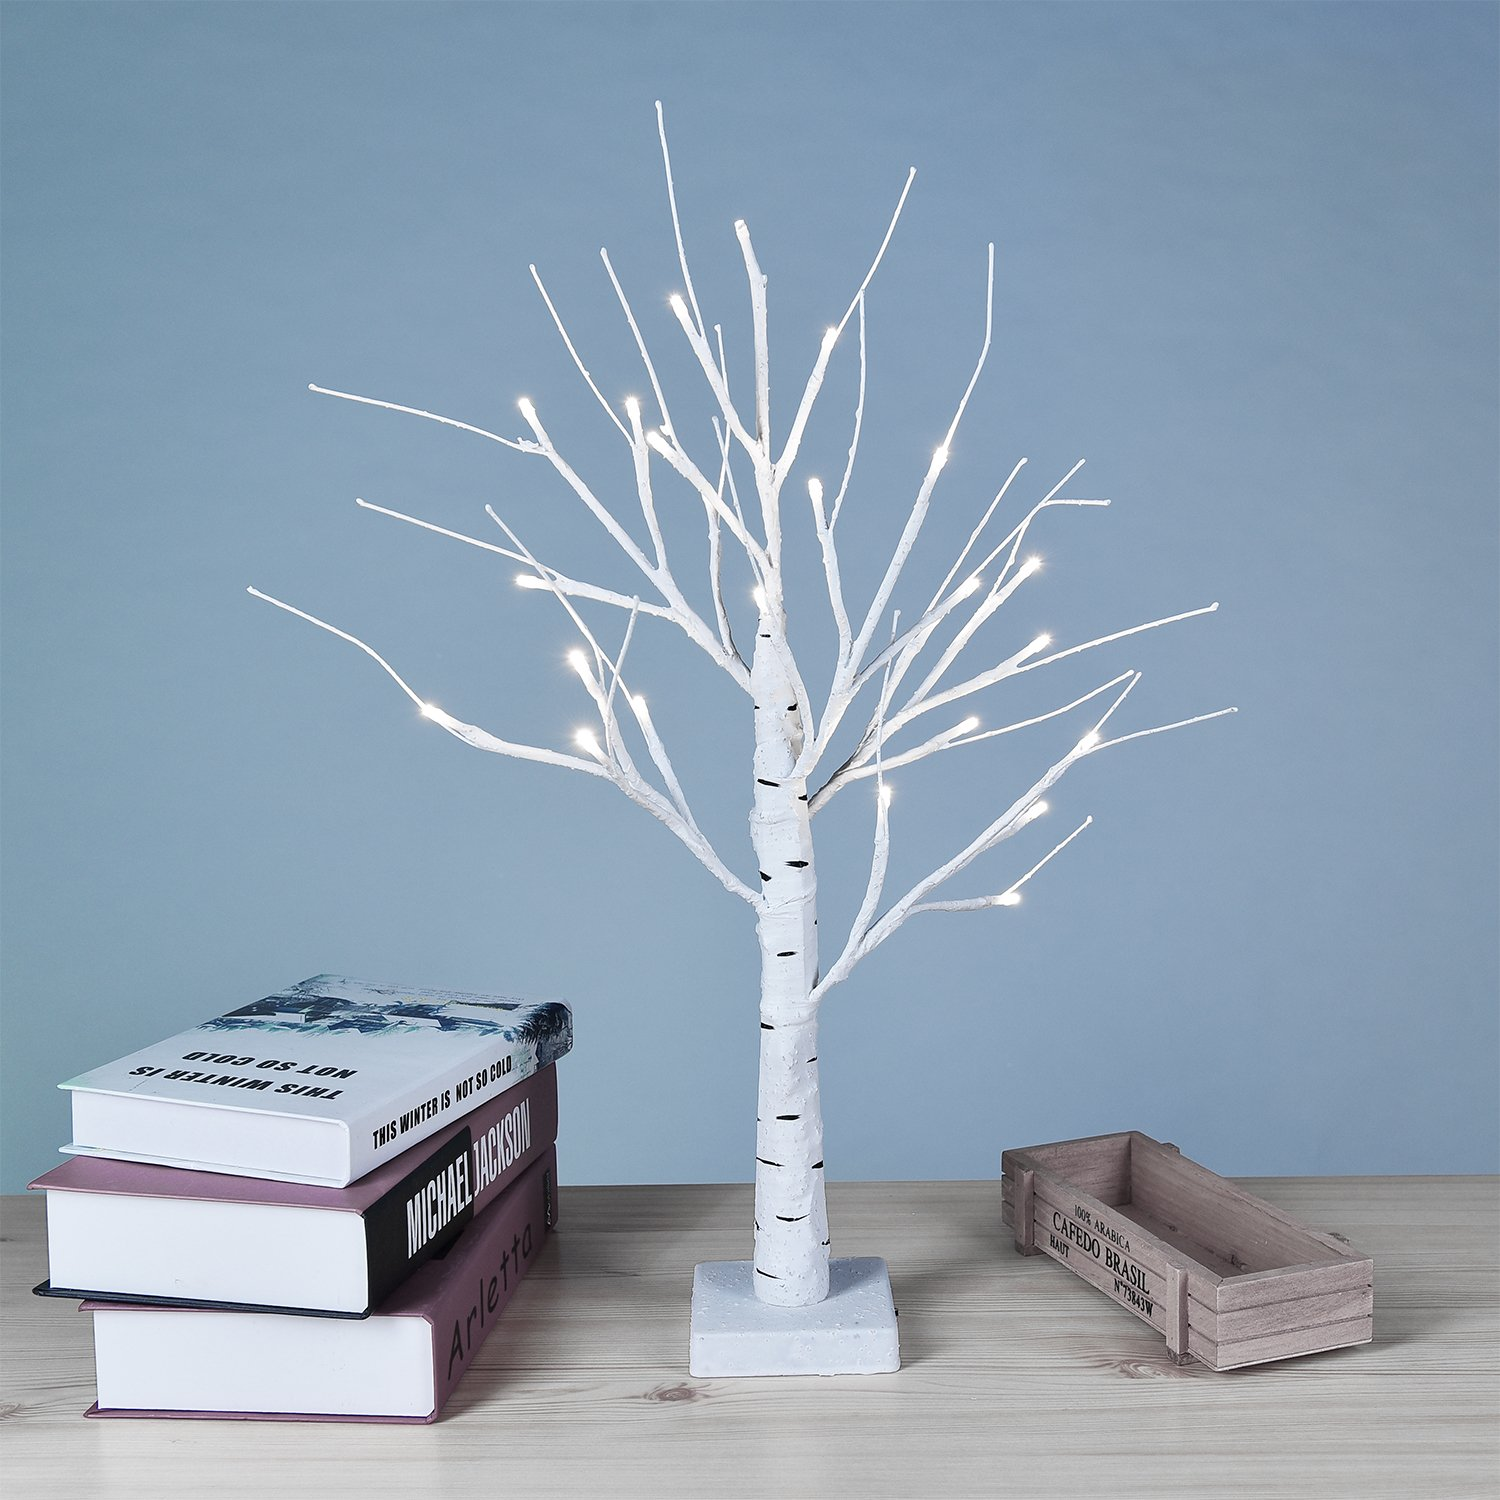 Lightshare Birch Tree 18'' Table Lamp, 24 LED Lights, Warm White, Bonsai Tree For Holiday Décor